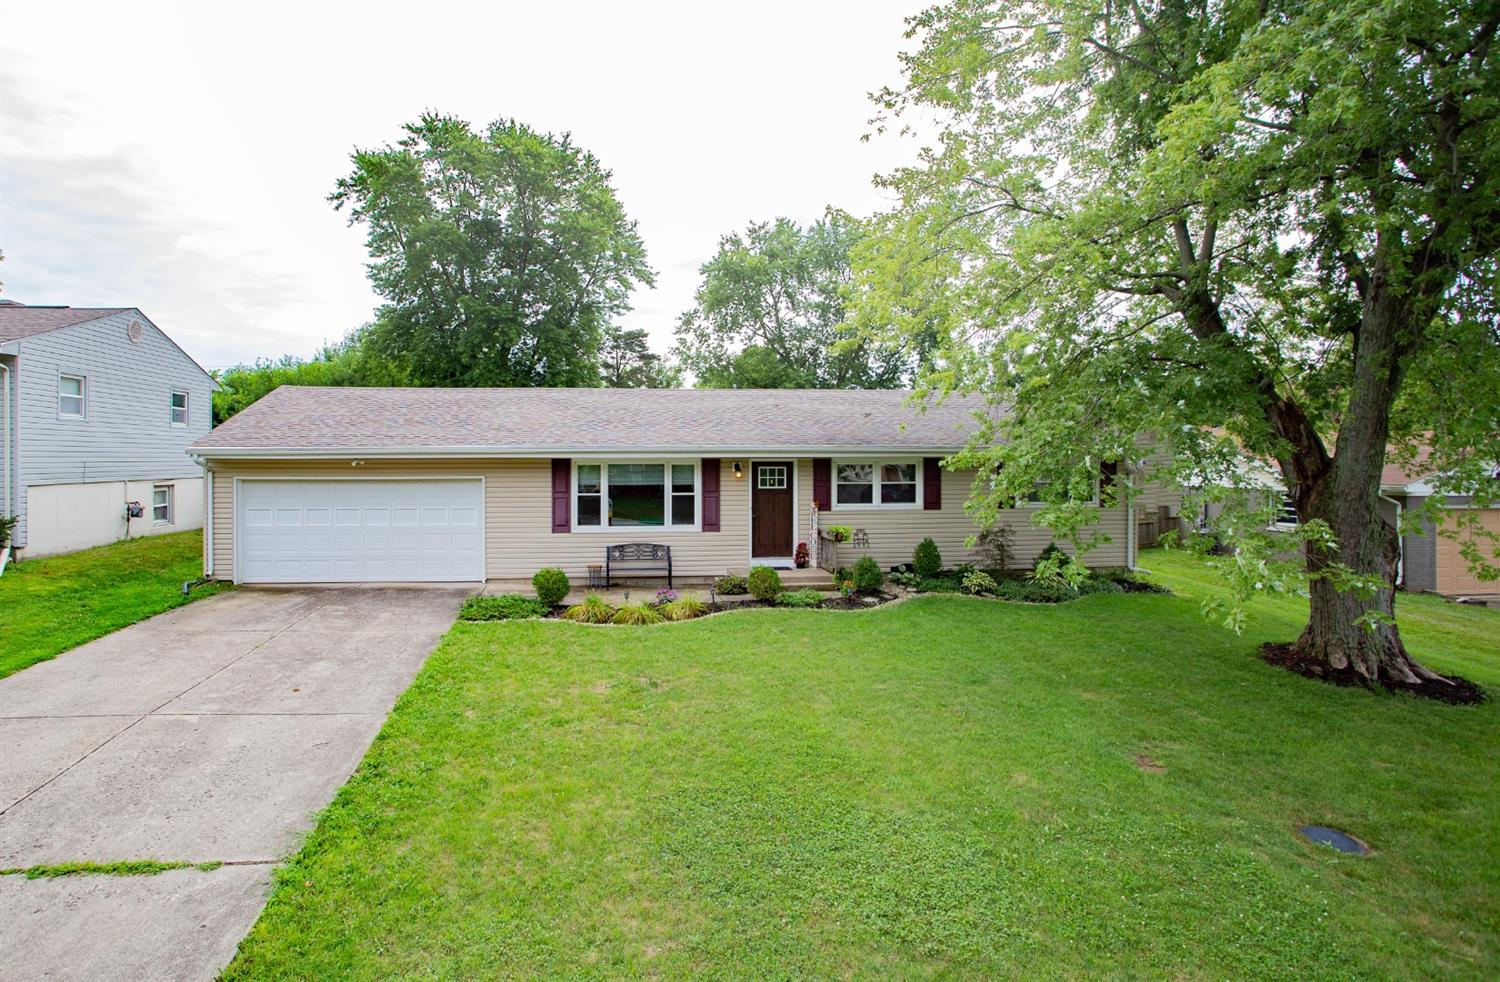 Property for sale at 152 Sands, Lemon Twp,  Ohio 45050